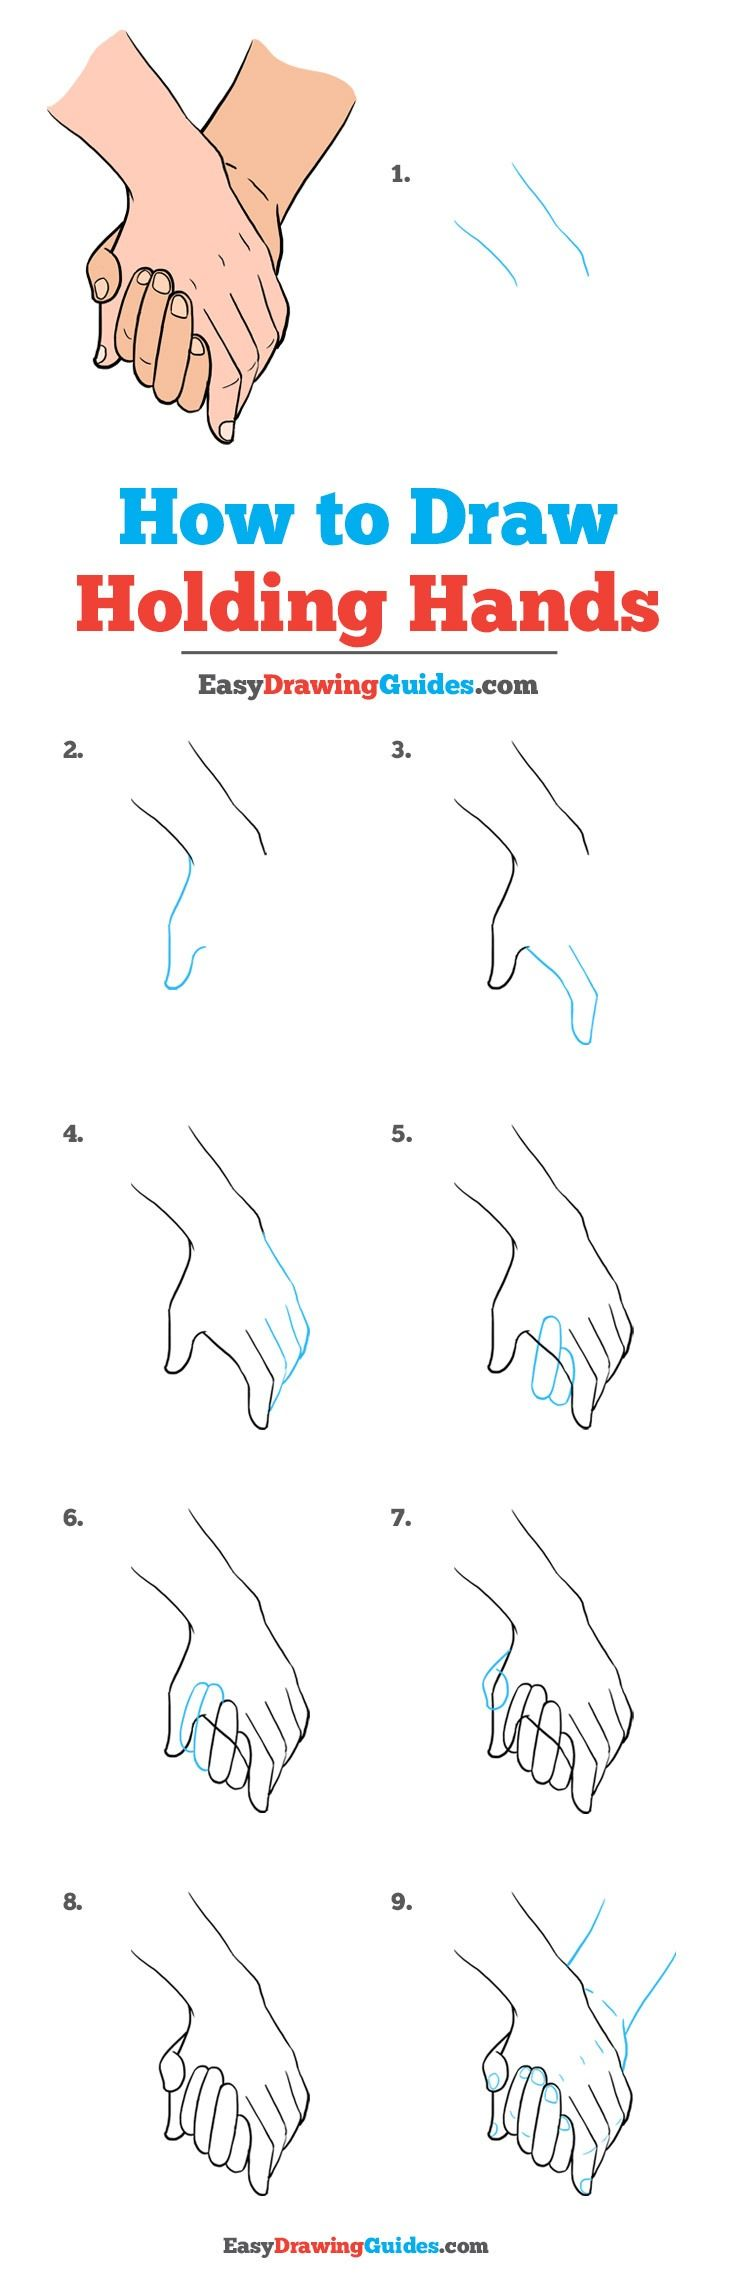 How to draw holding hands easy drawing tutorials ideas by easy drawing guides art sketches drawings drawing tutorial hands